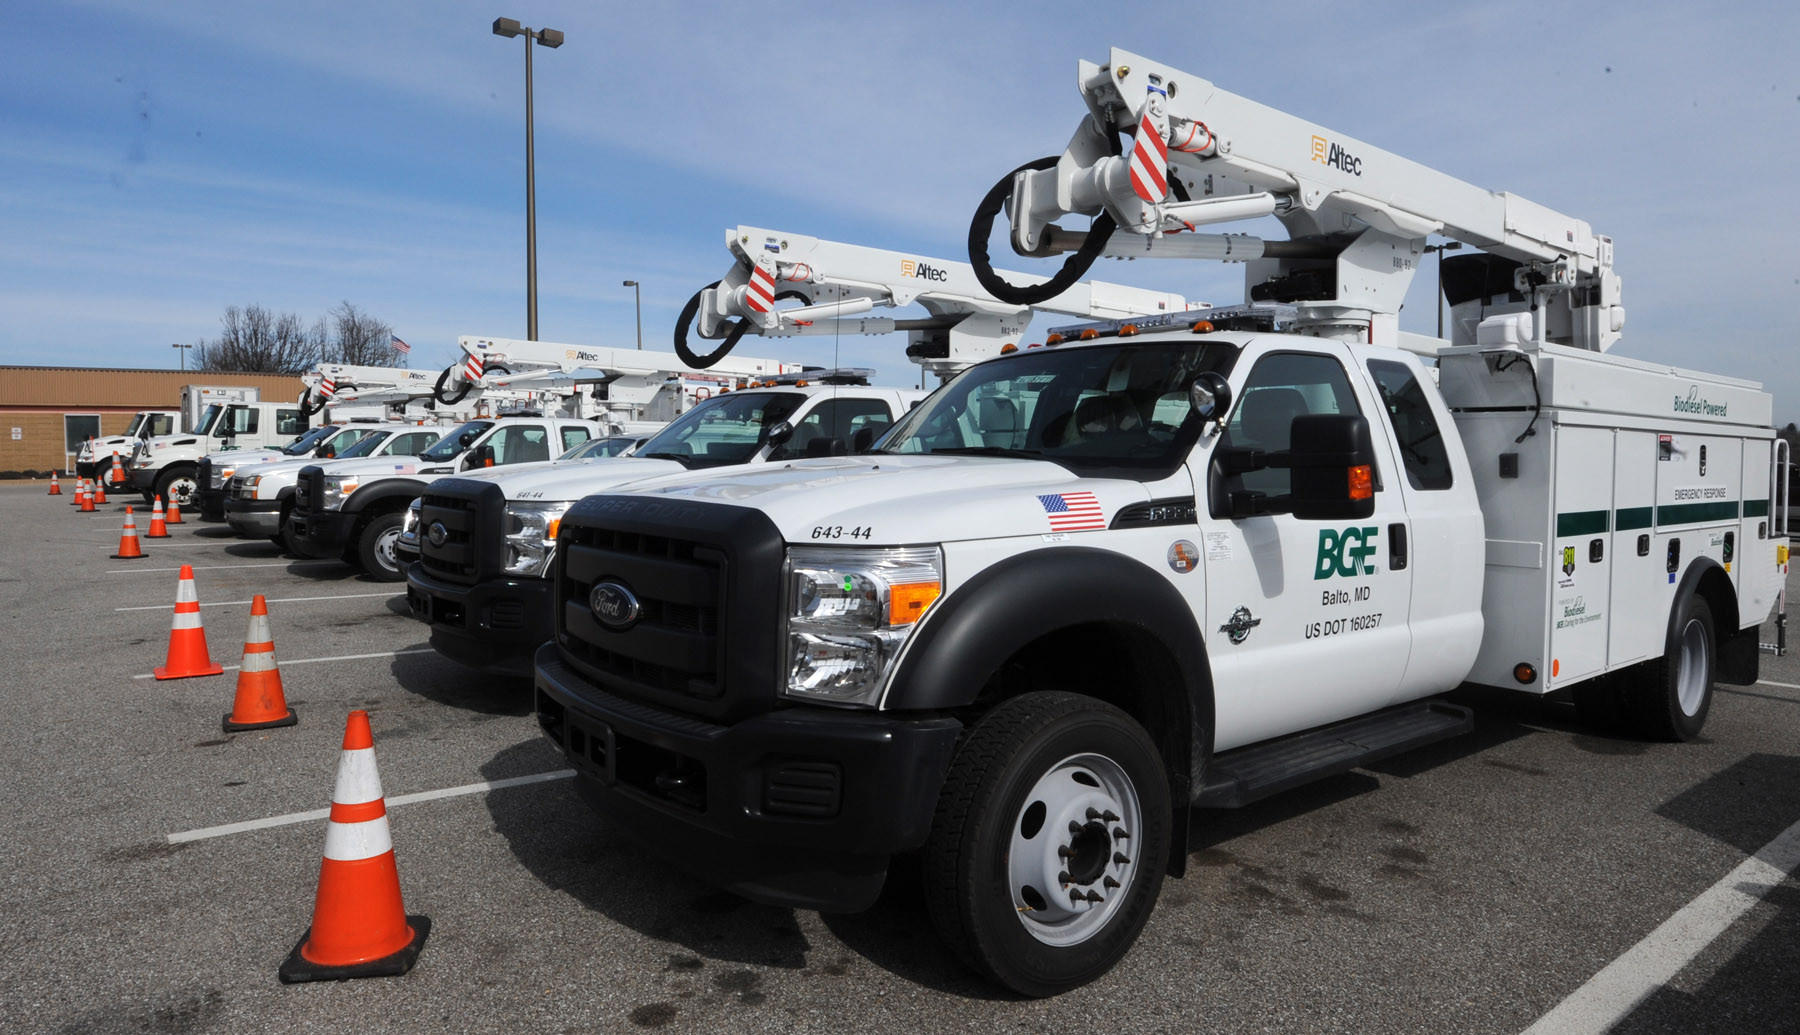 Bge Asks For Fourth Rate Increase In Four Years